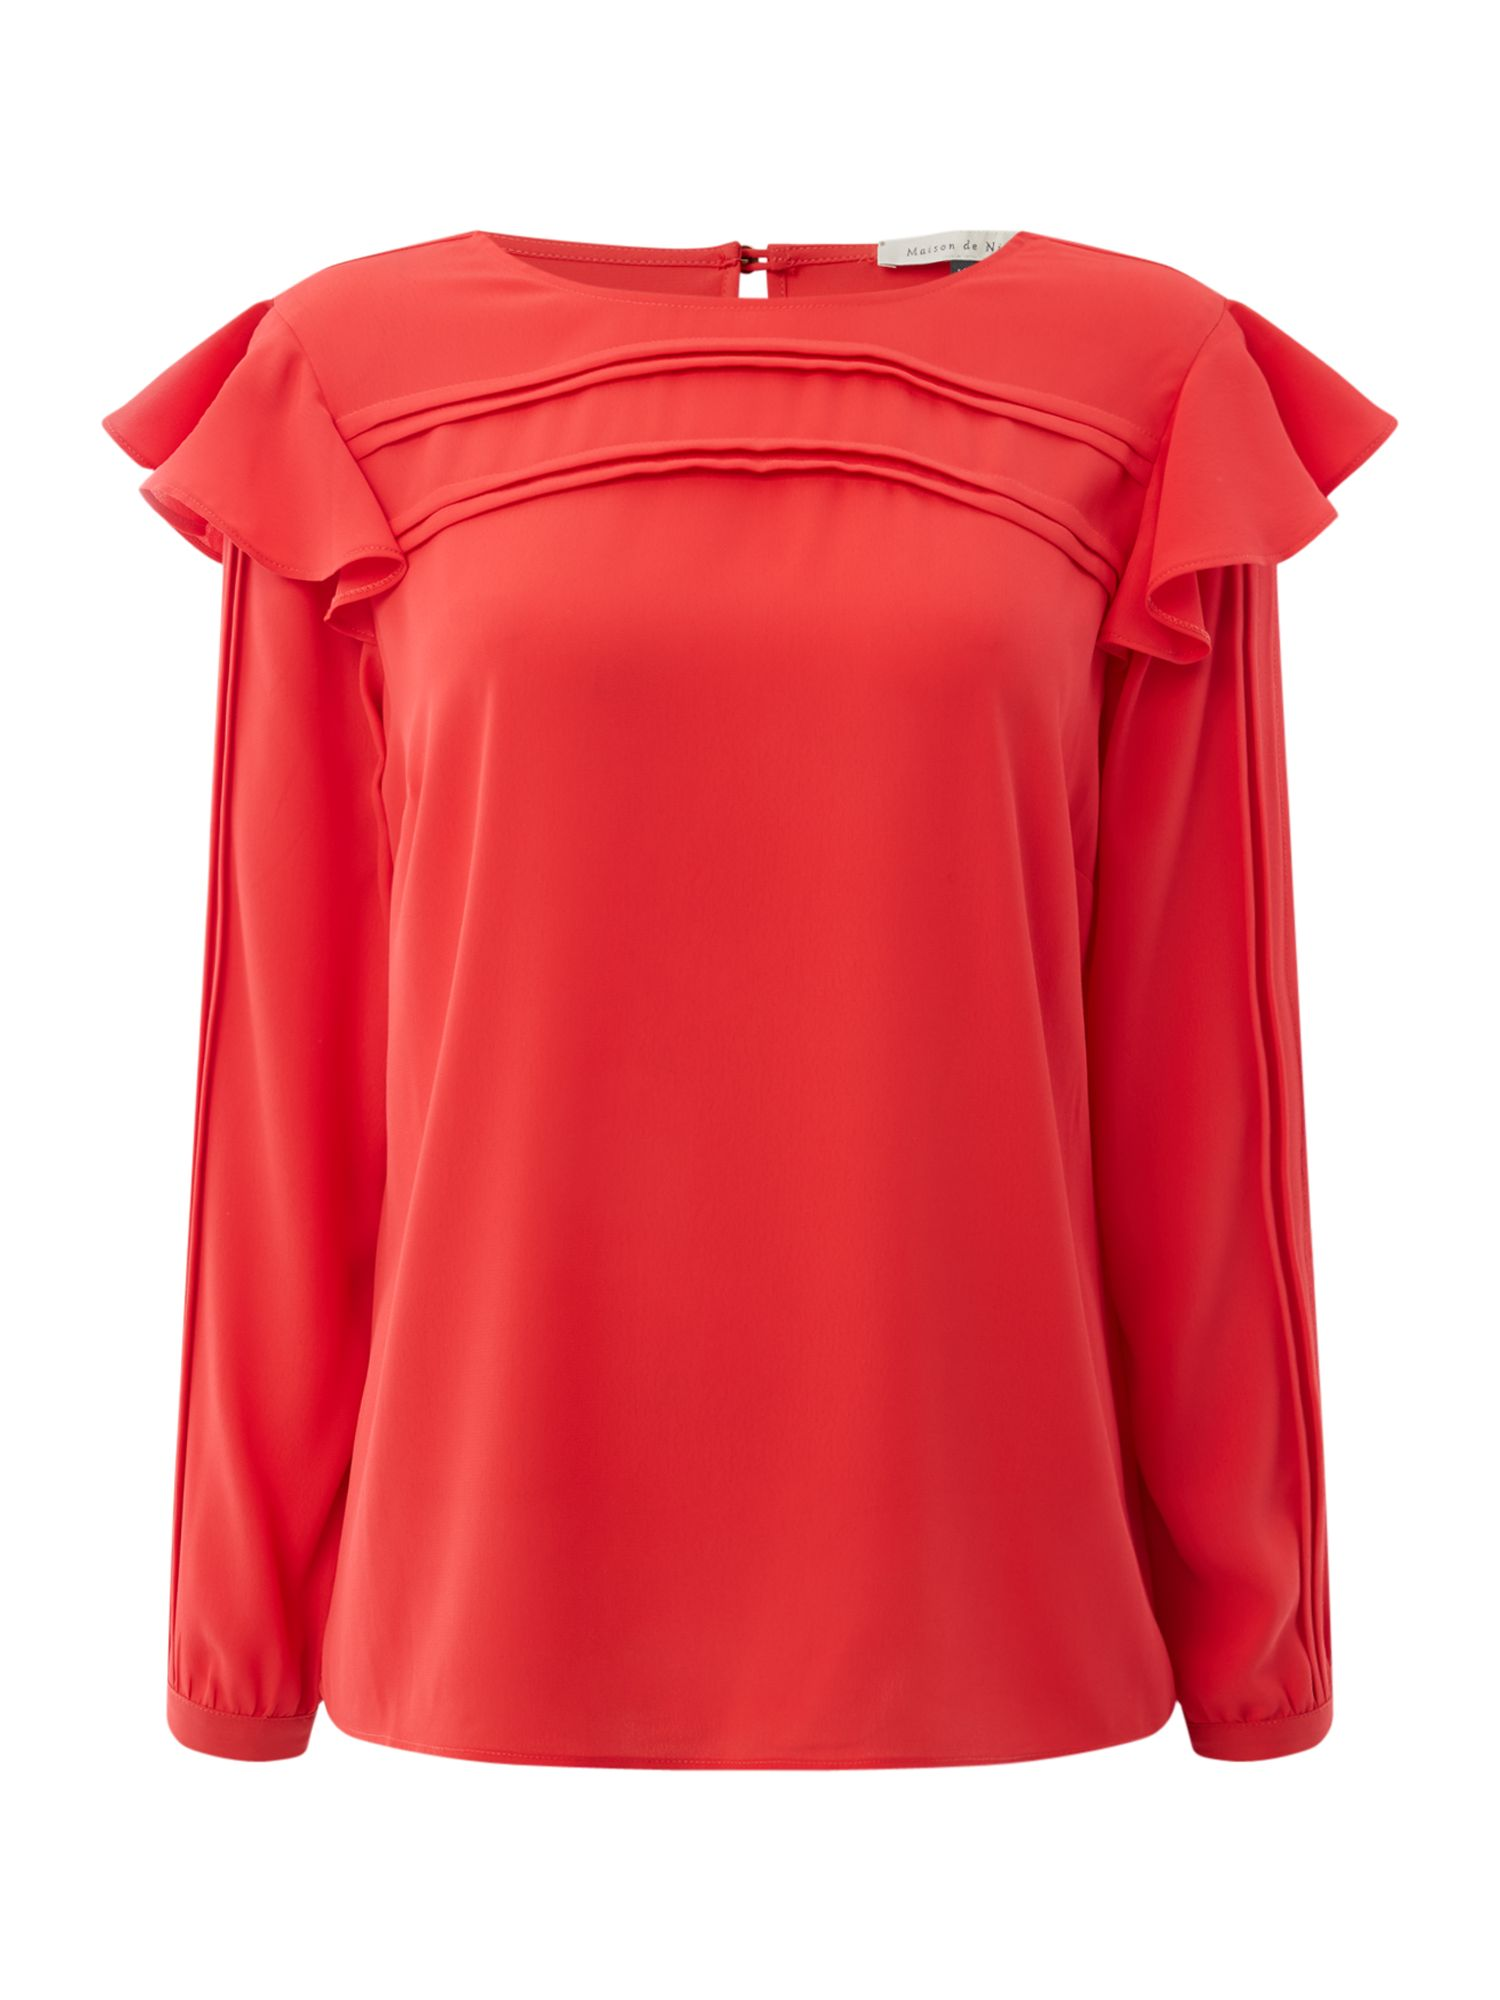 Maison De Nimes Pleated Blouse, Red